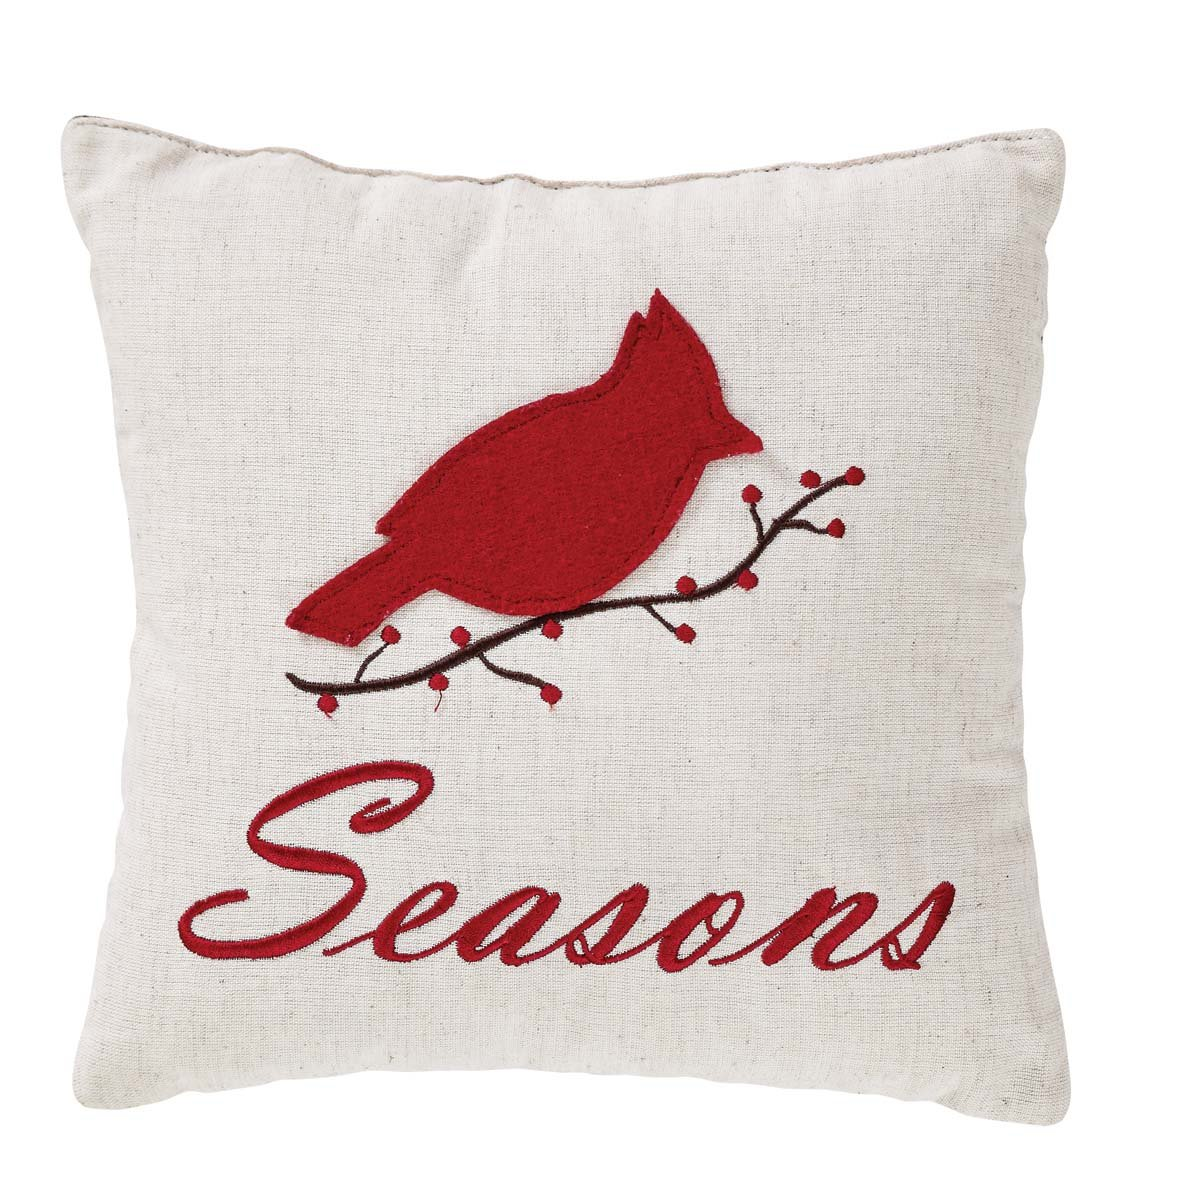 Seasons Greetings Pillow Set of 2.